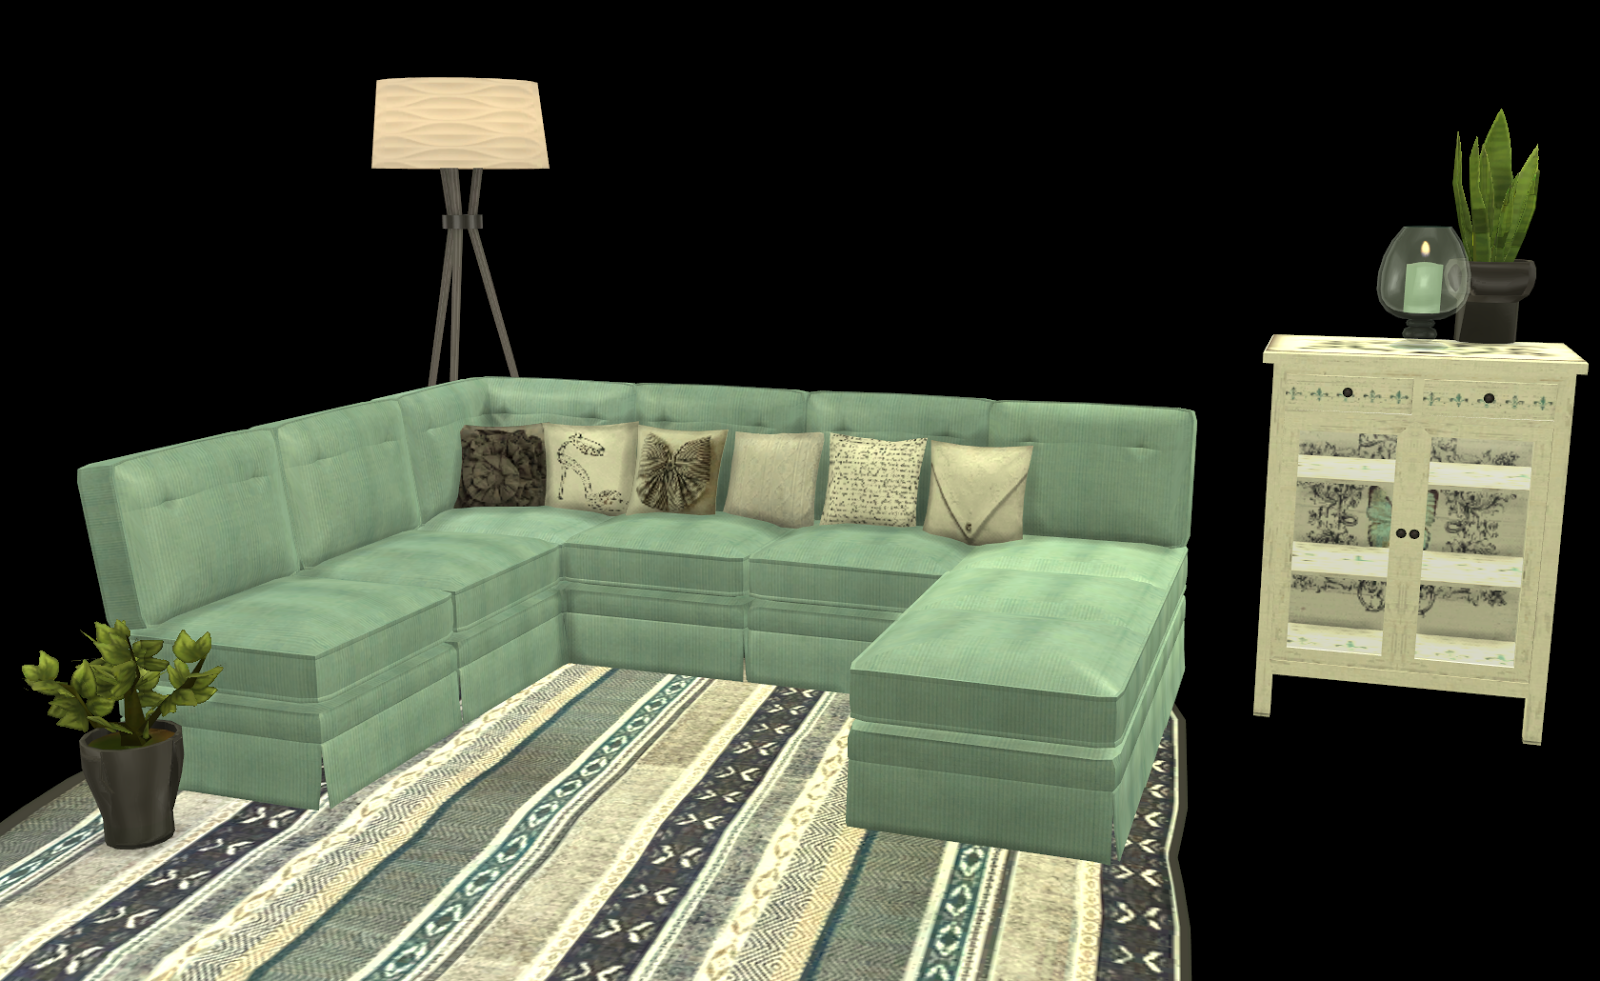 My Little The Sims 3 World Furniture Recolors Set 6